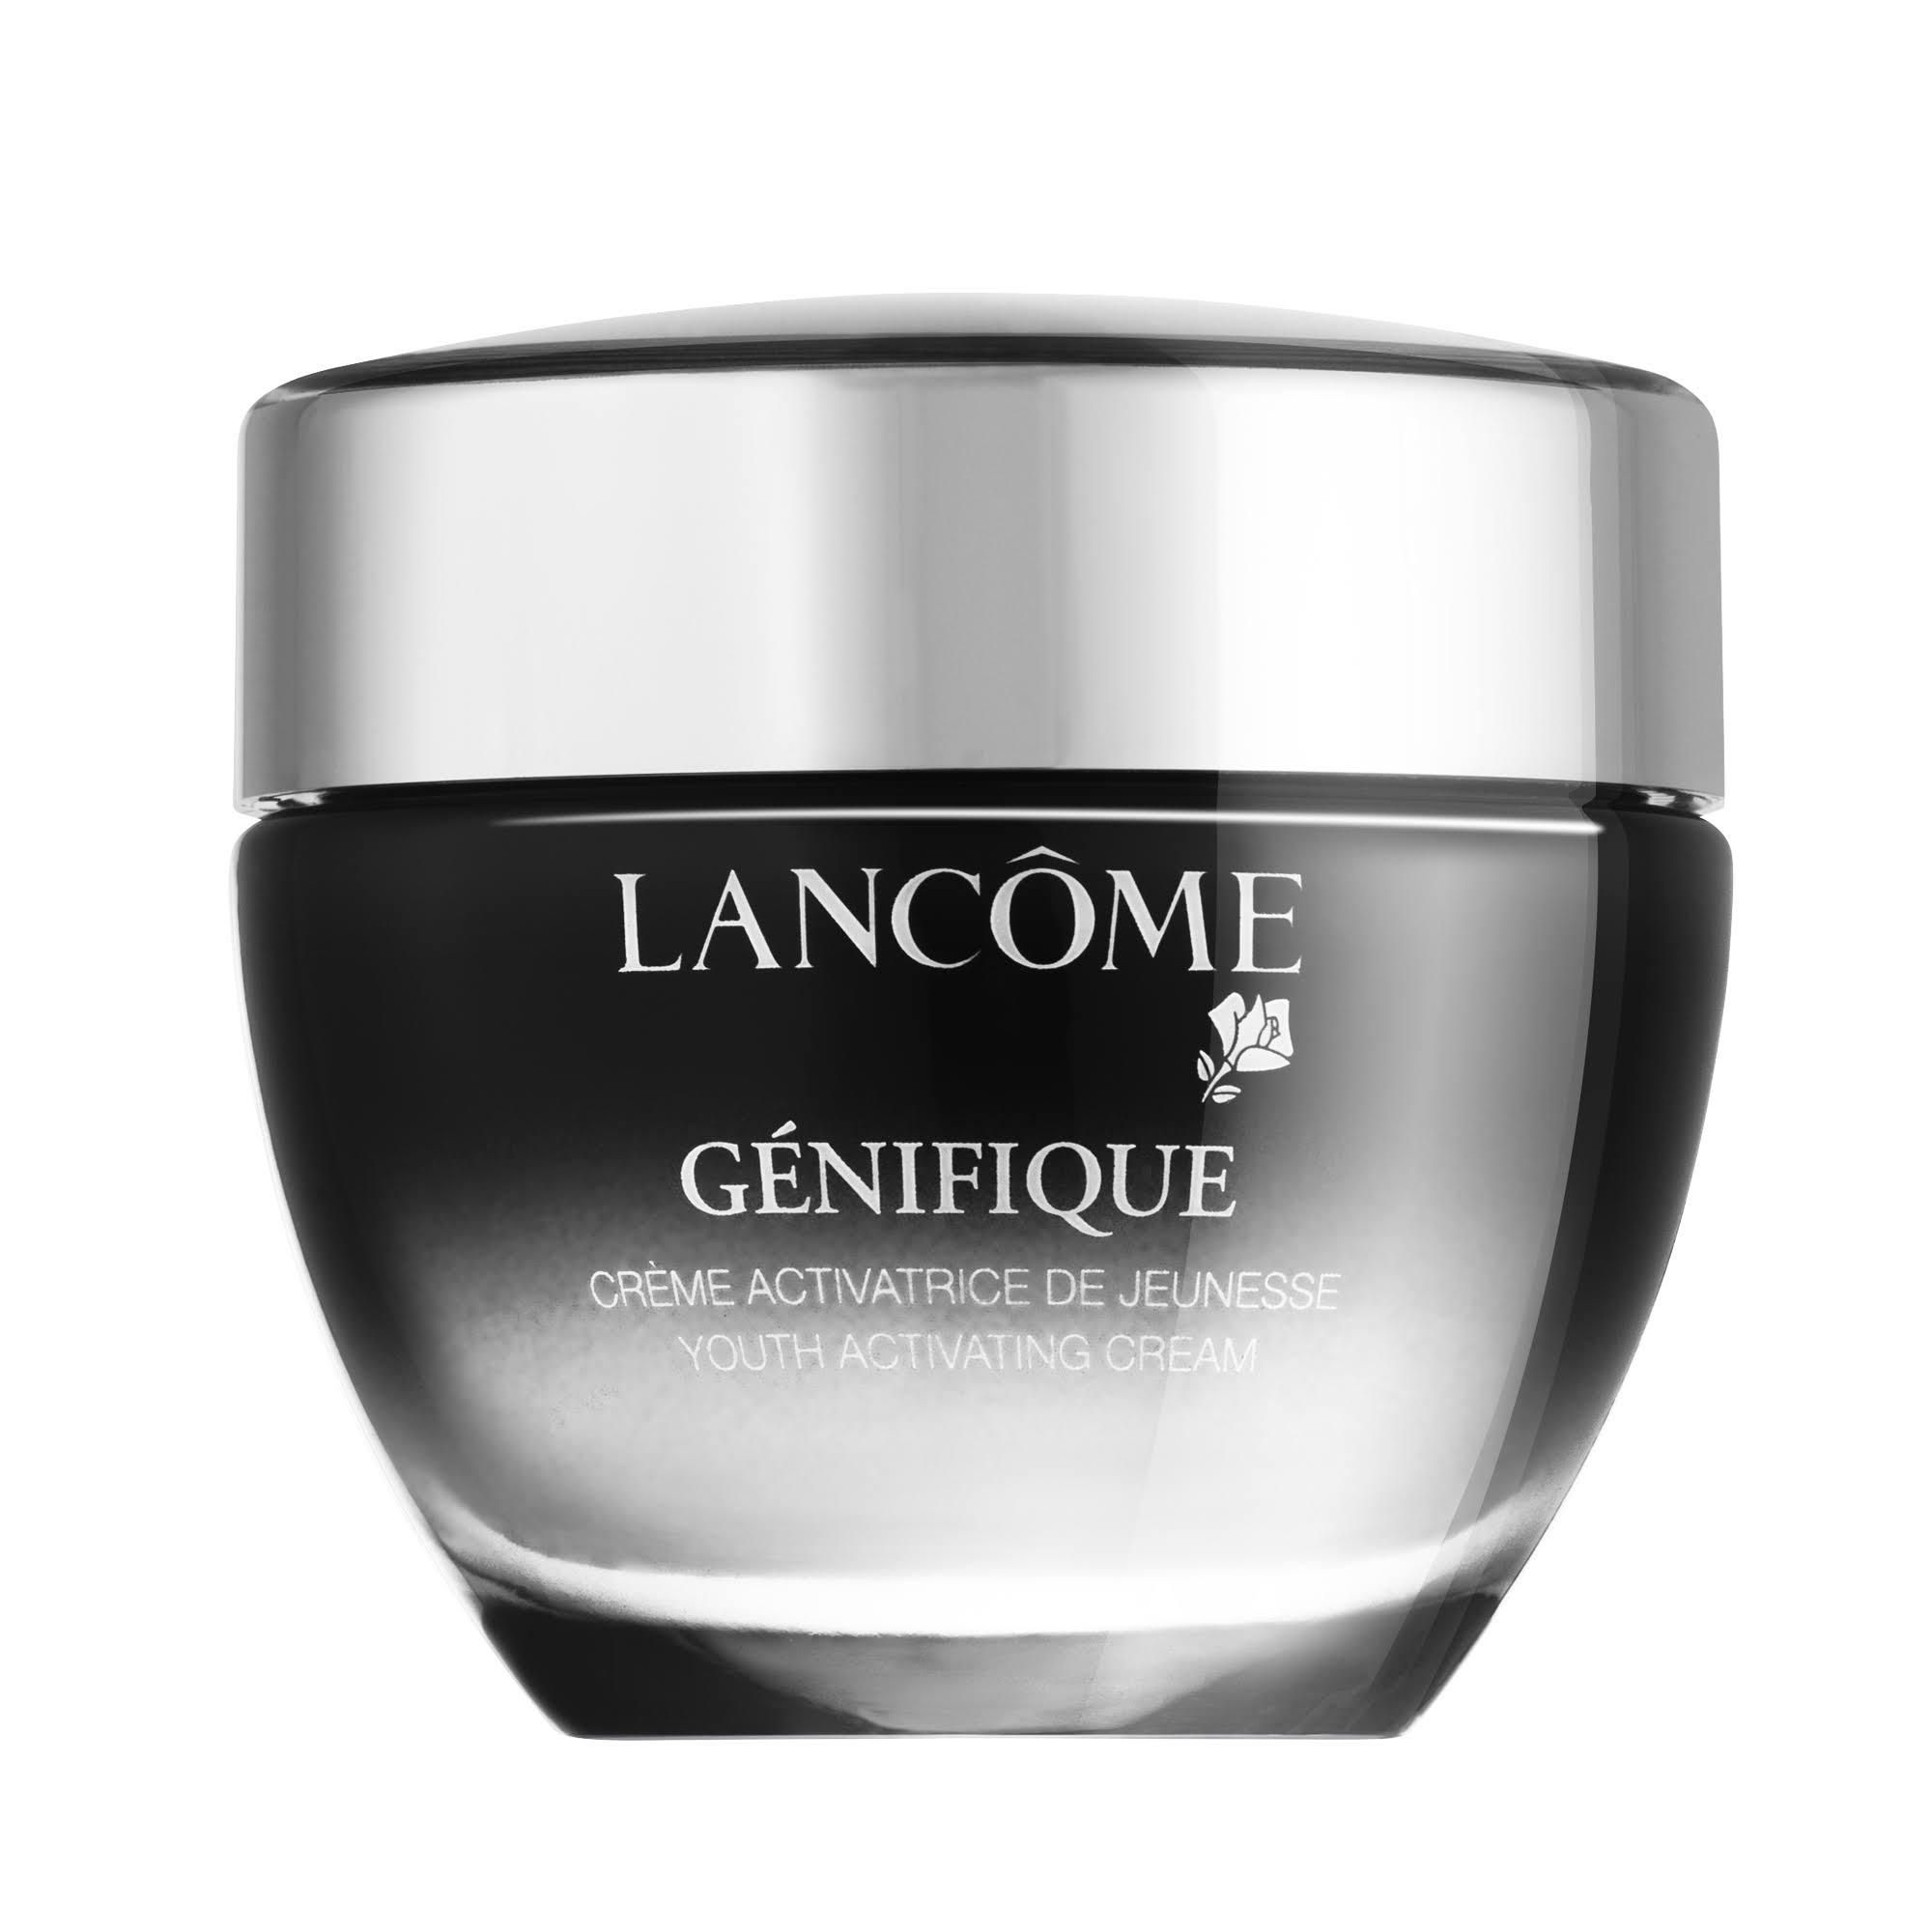 Lancome Genifique Youth Activating Cream - 50ml